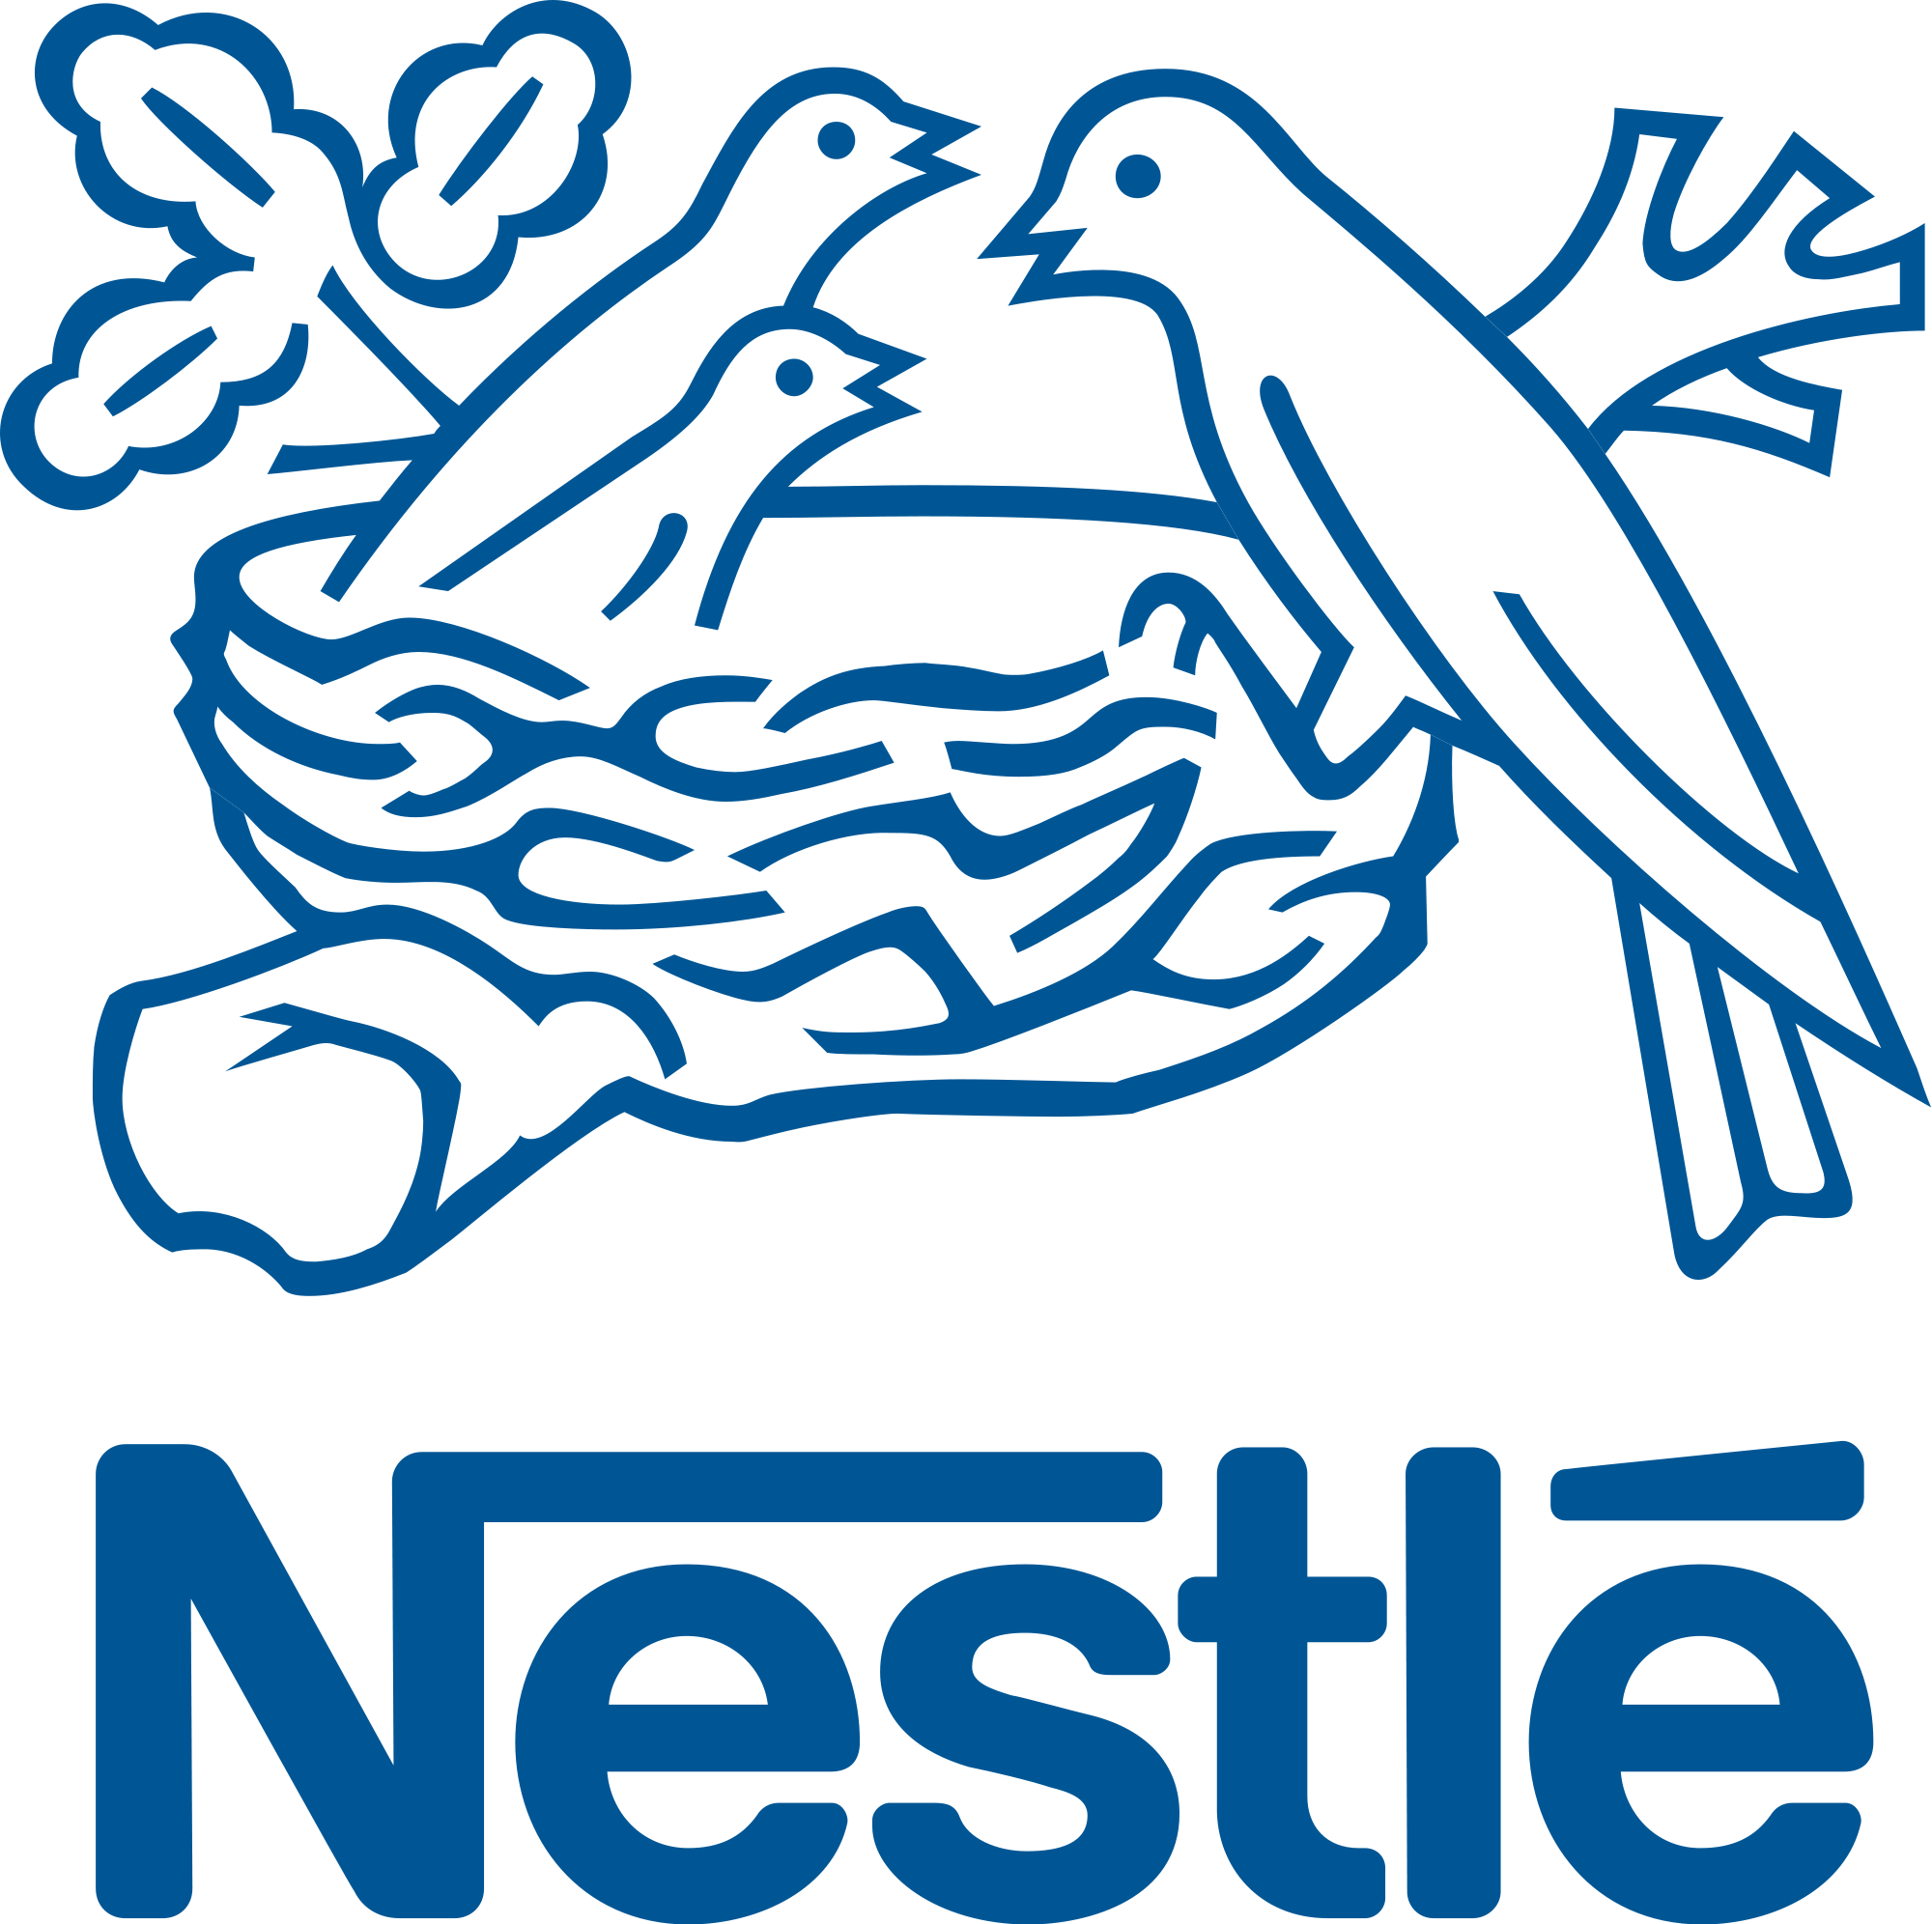 364239-nestle.png